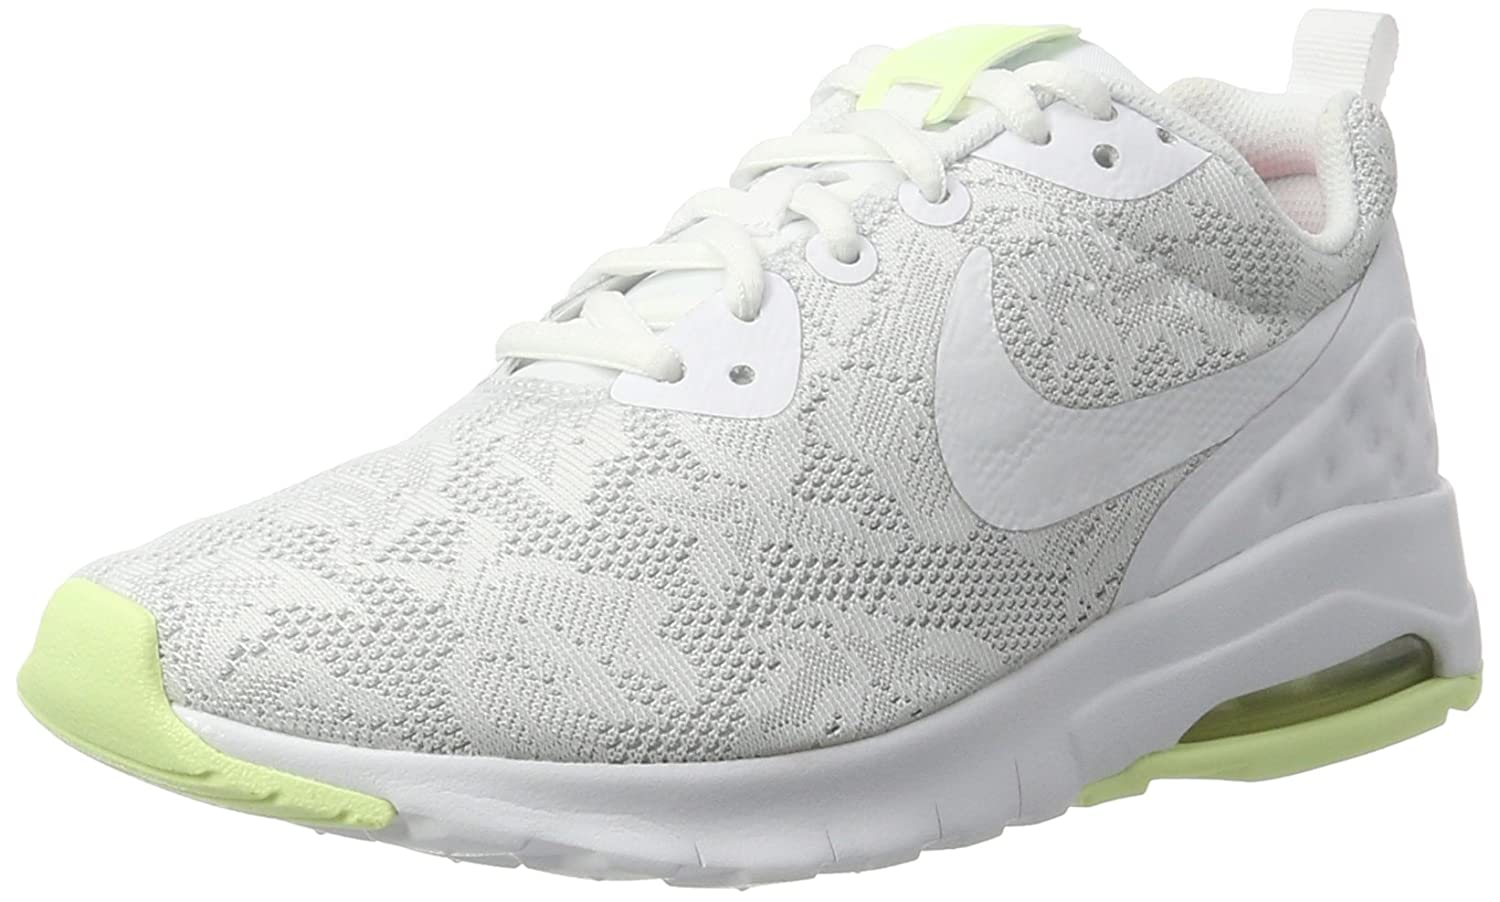 Nike Damen Air Max Motion Low Engineerot Turnschuhe